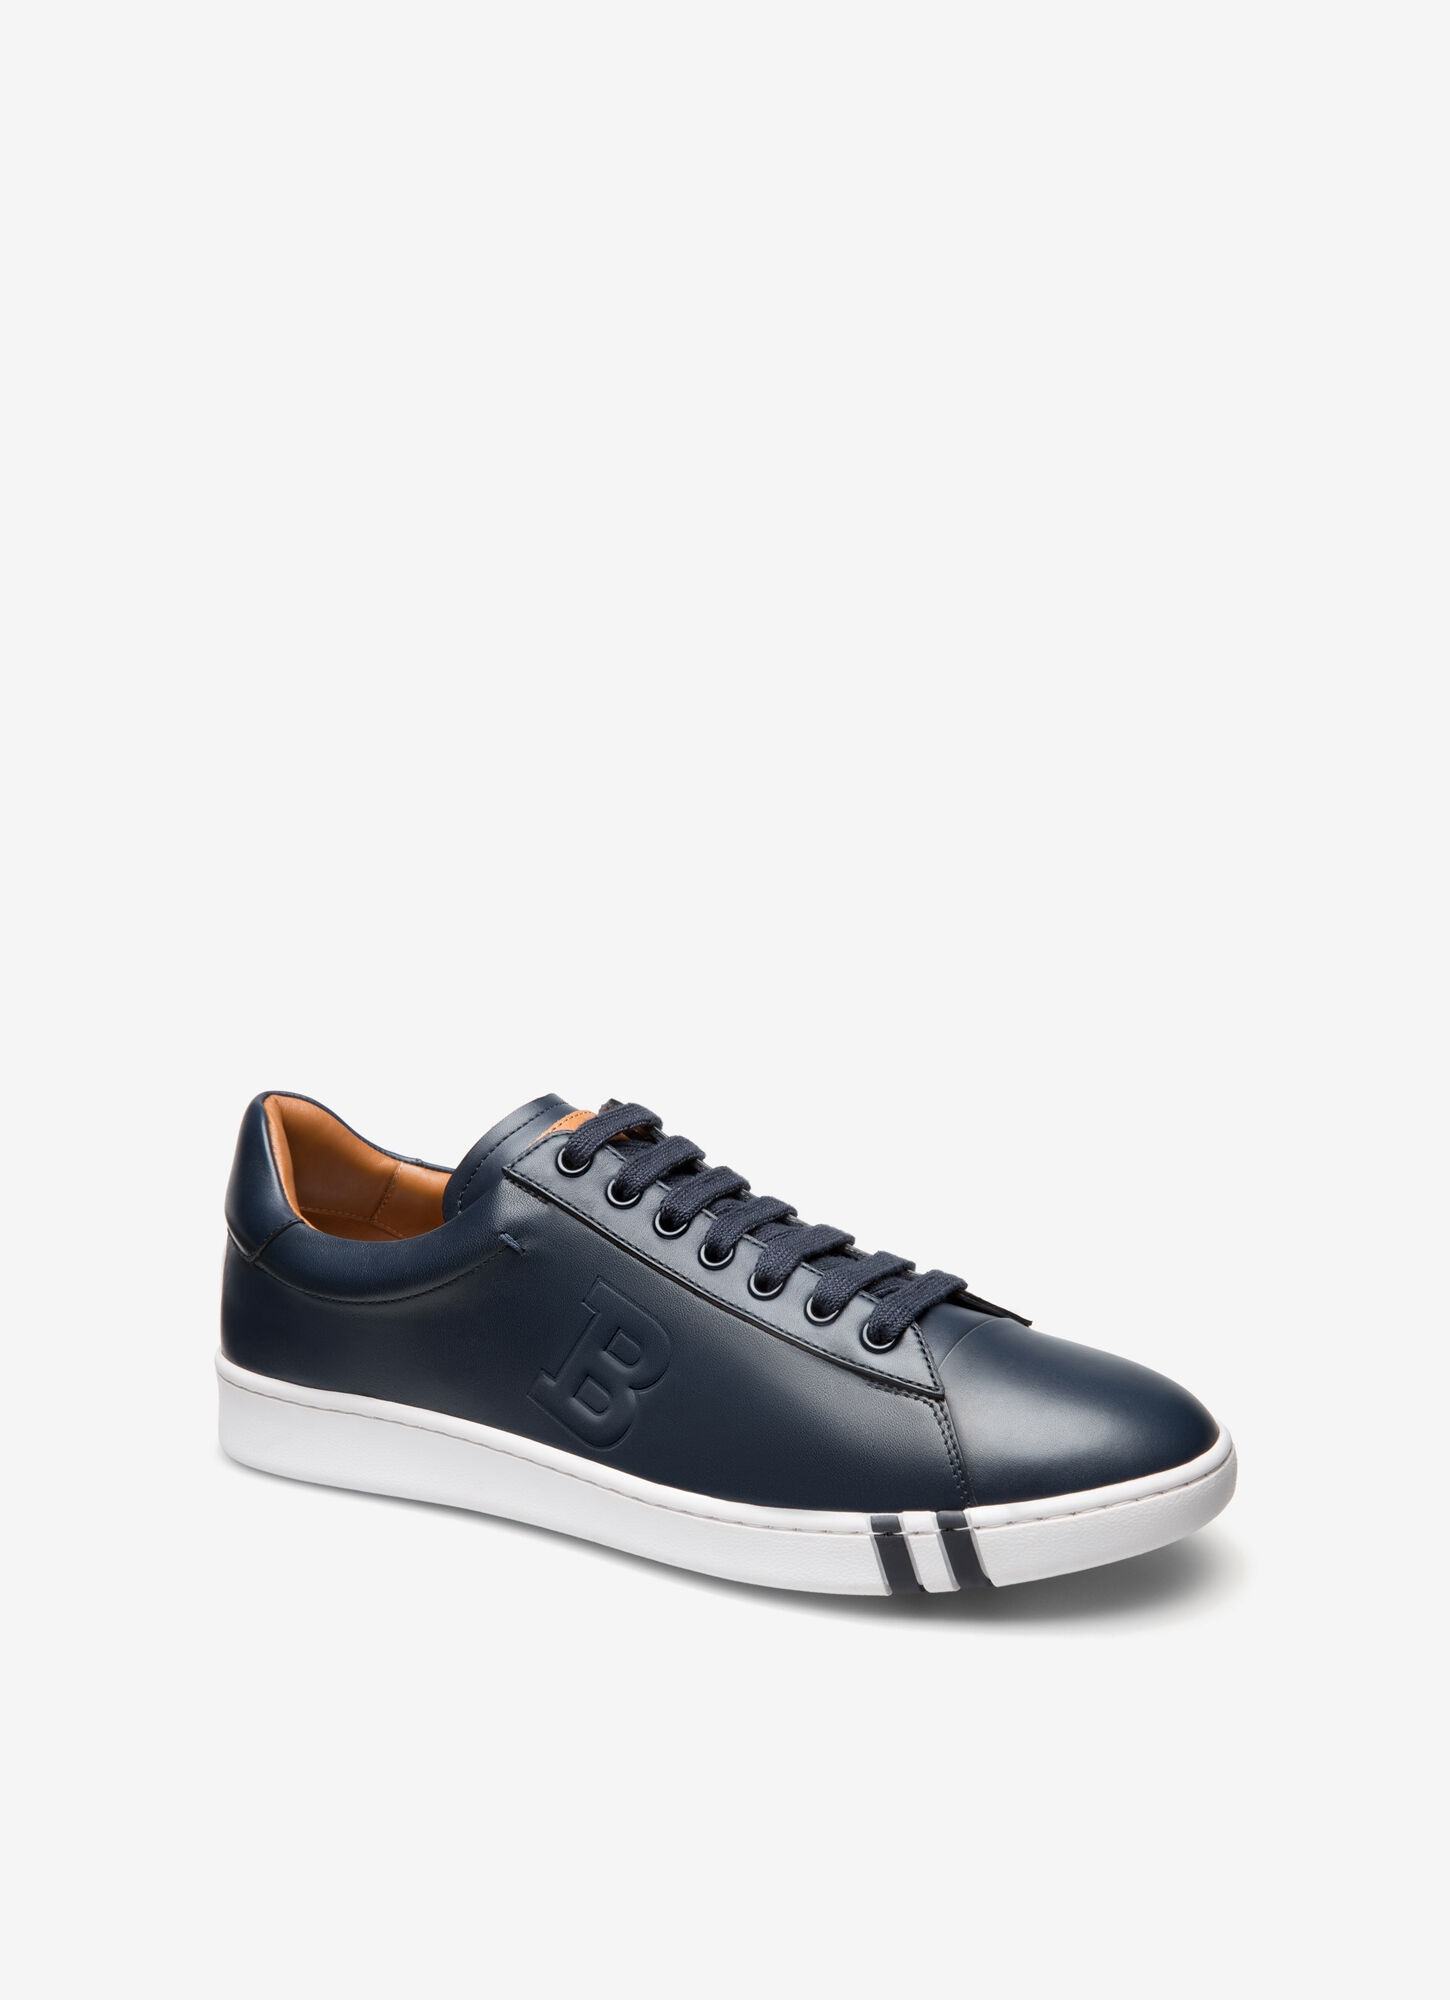 ASHER | Men's Trainers | Bally Shoes